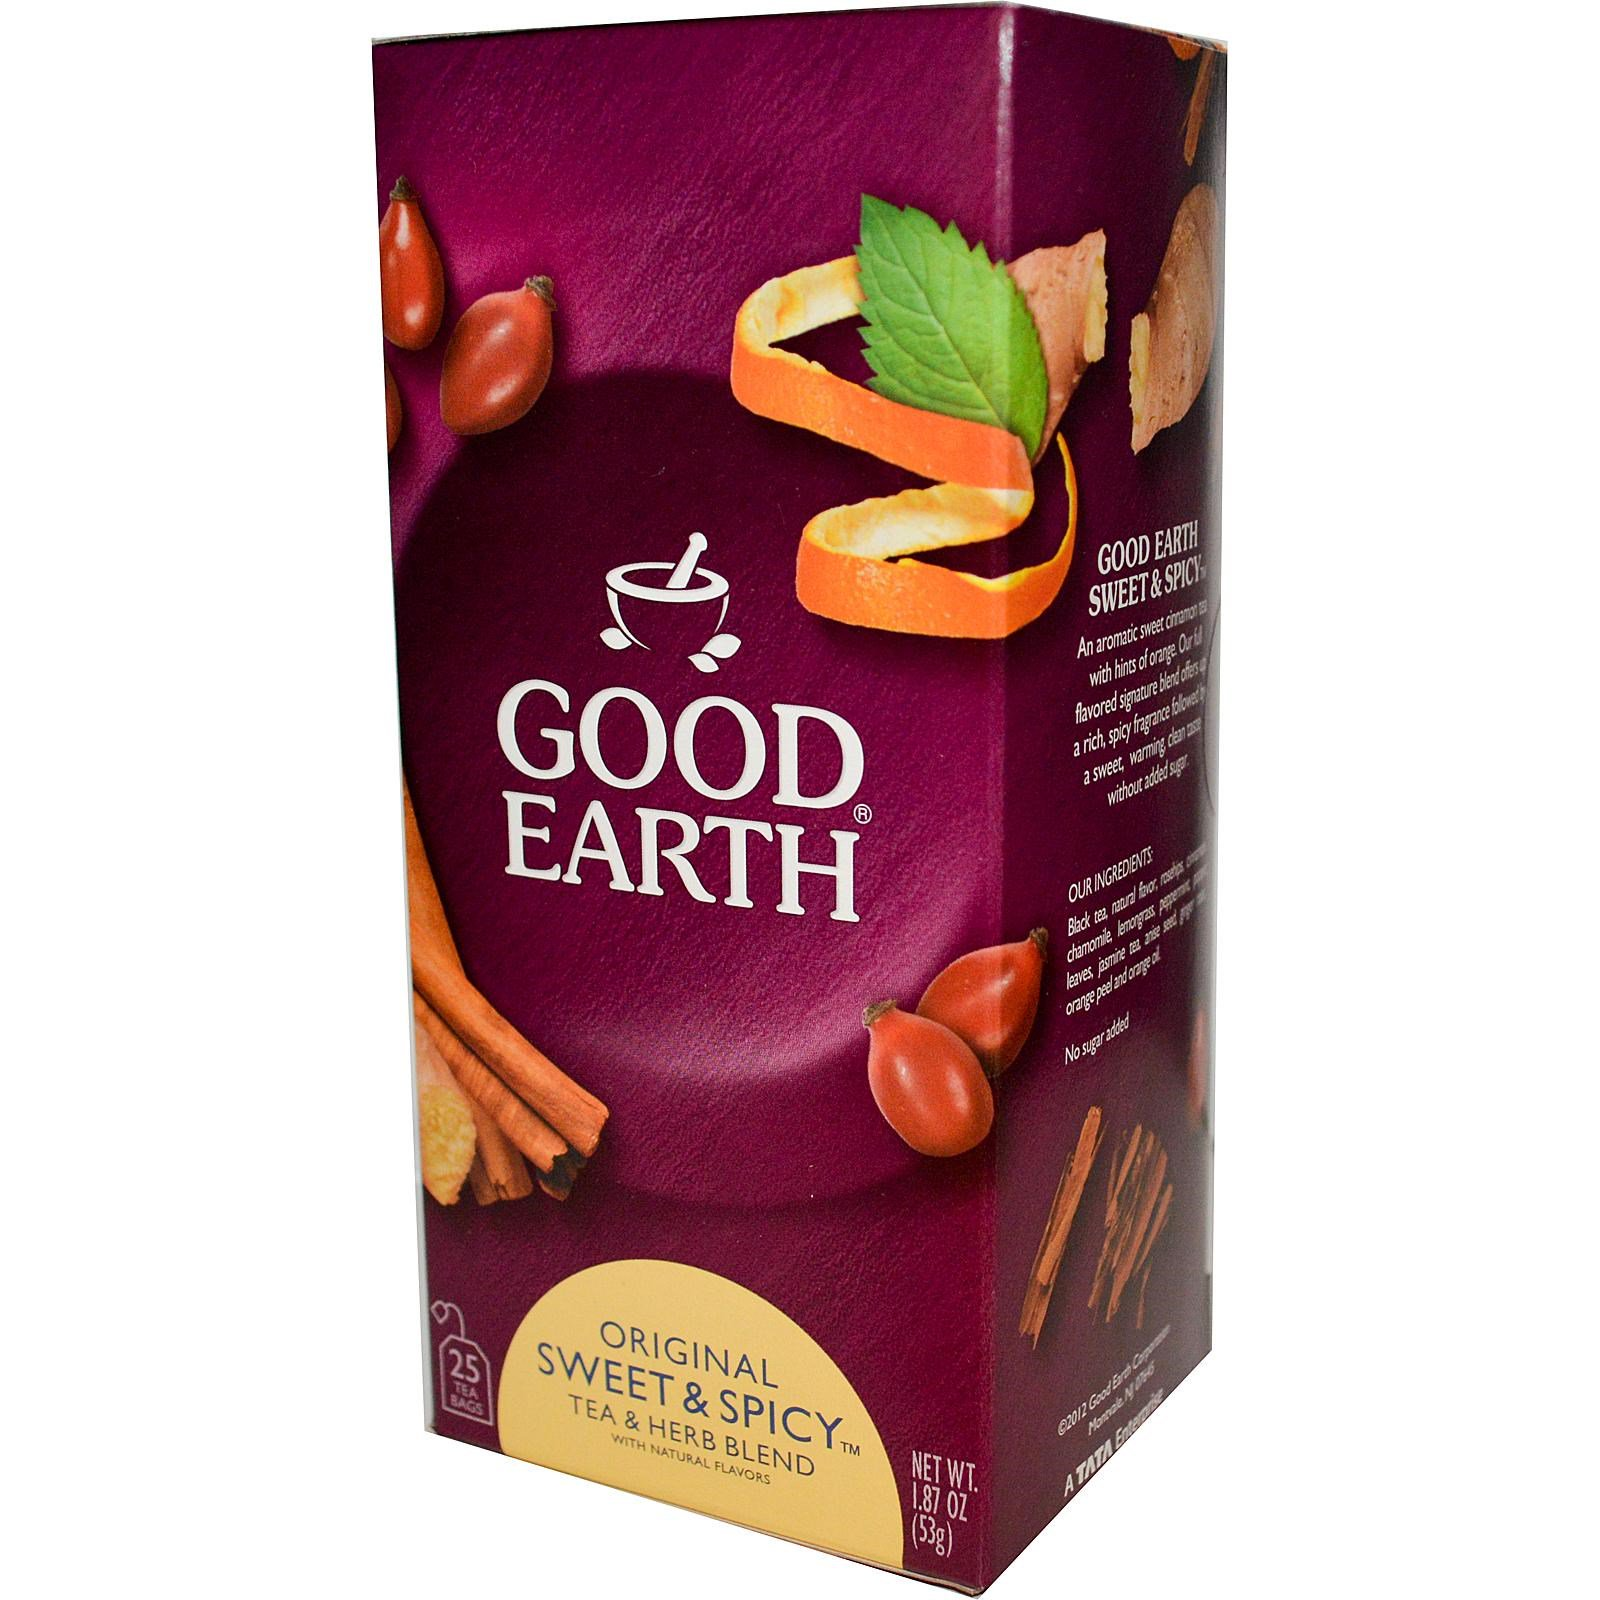 Good earth original sweet and spicy